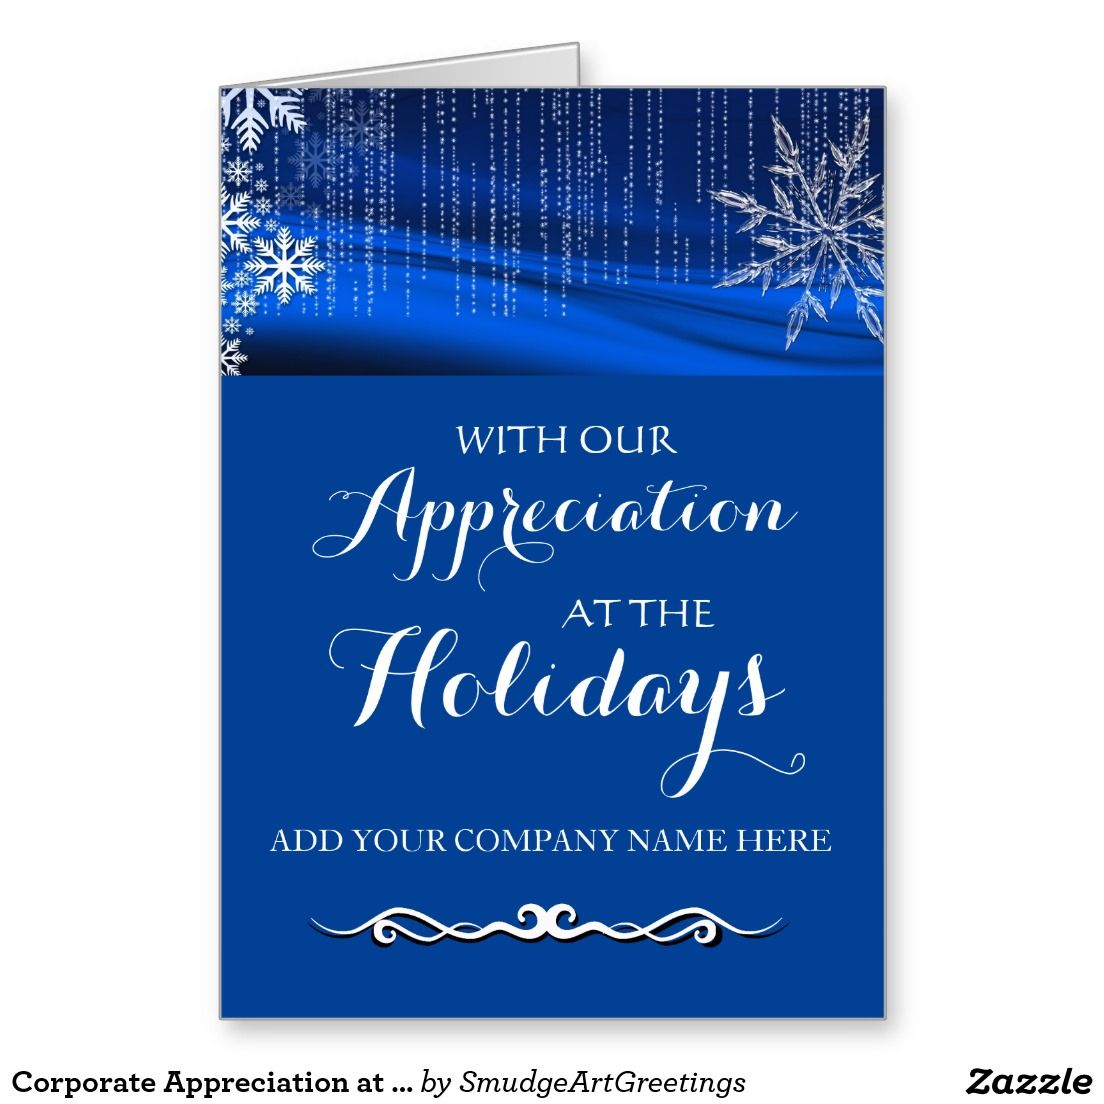 Corporate Appreciation At The Holidays Snowflakes Holiday Card